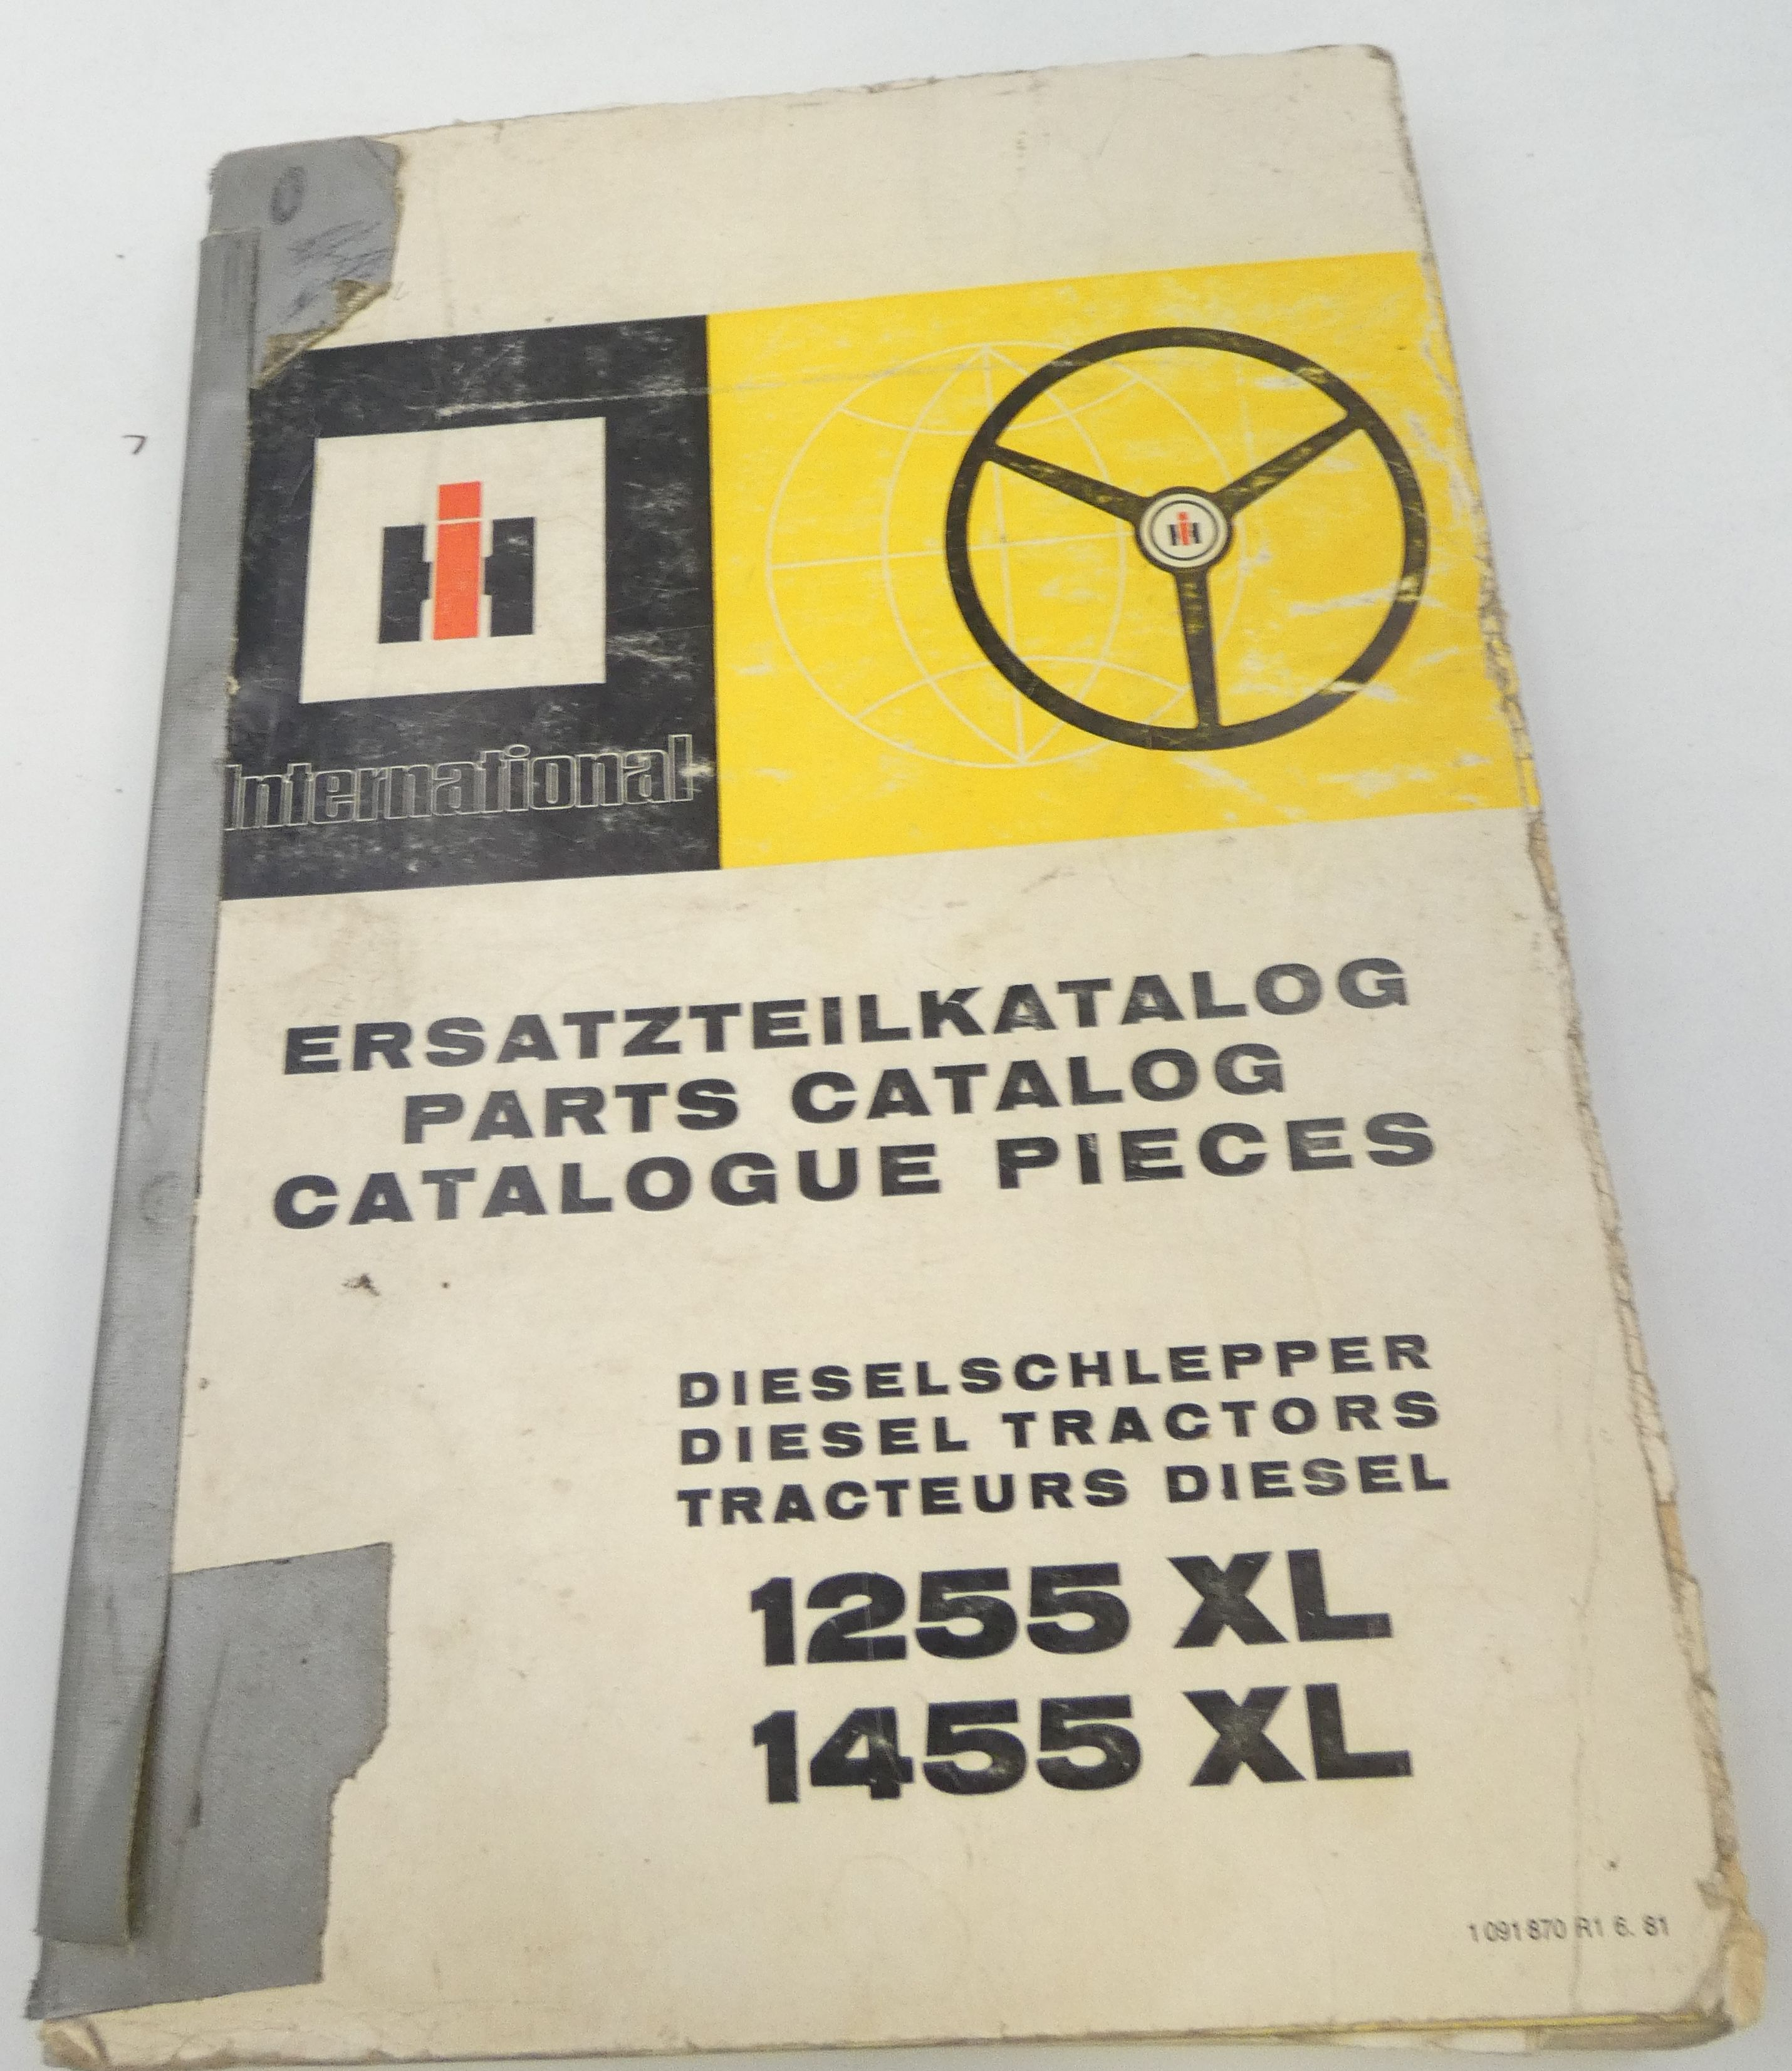 International 1255XL, 1455XL diesel tractors parts catalog